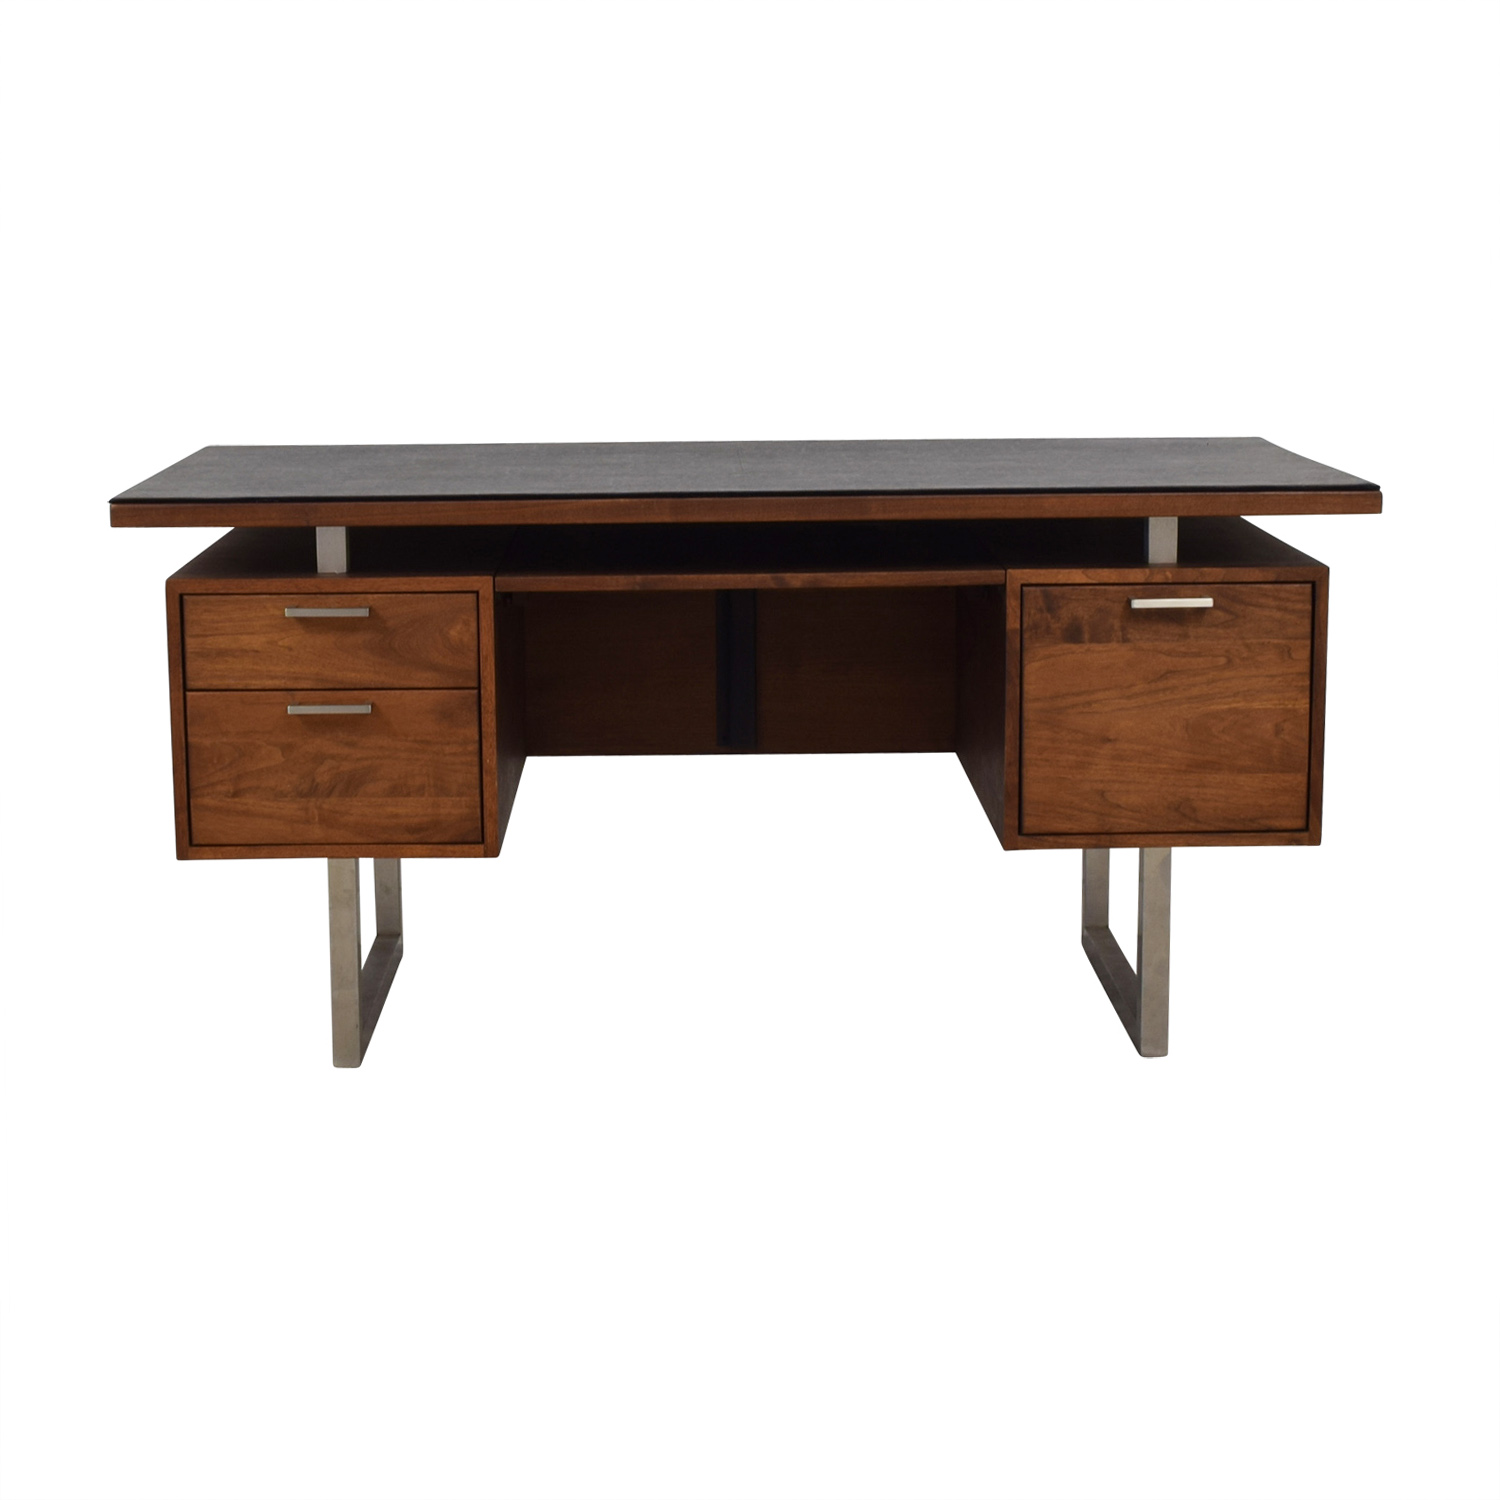 Crate & Barrel Crate & Barrel Clybourn Walnut Executive Desk